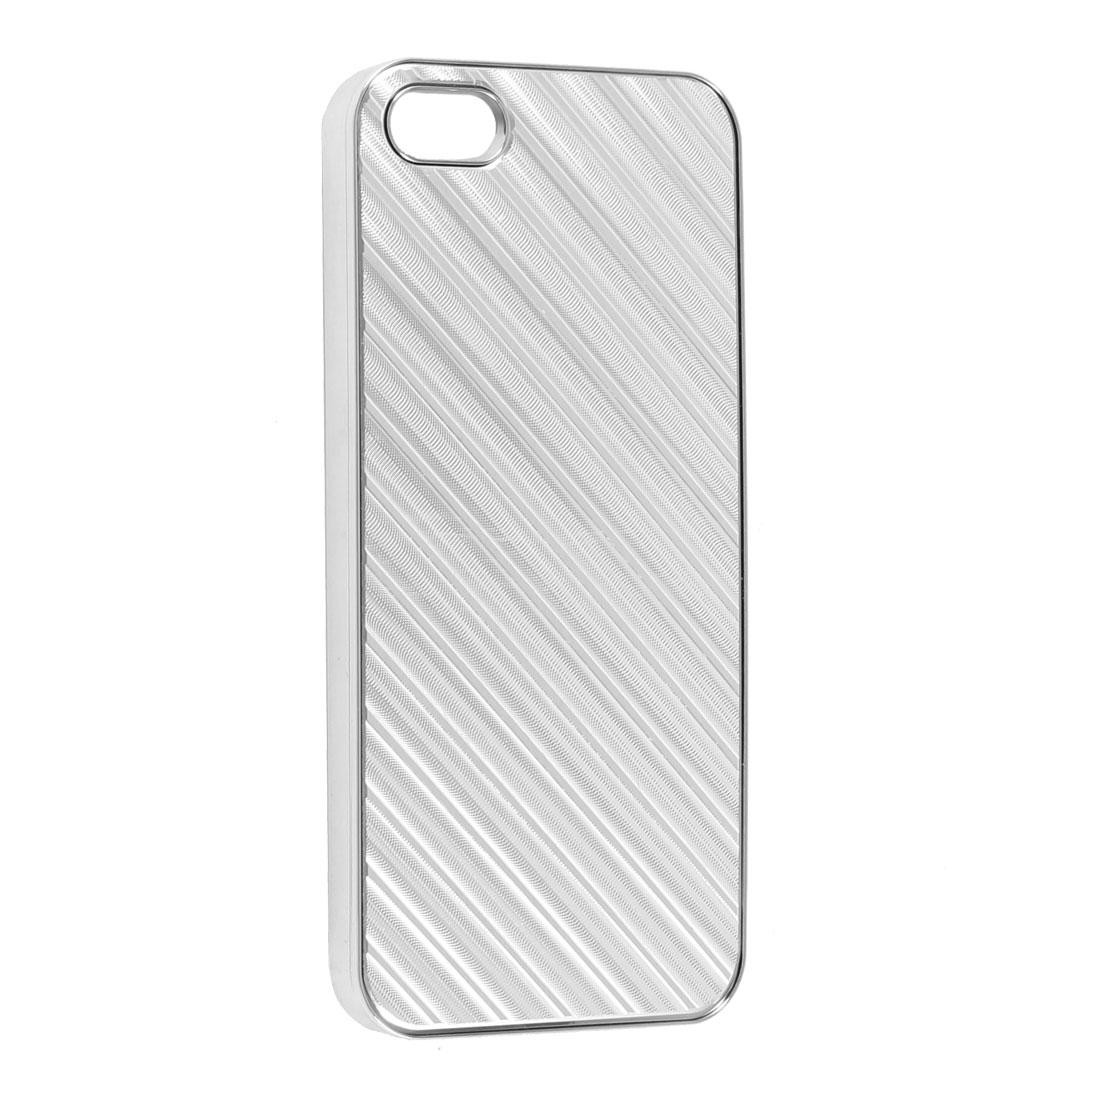 Silver Tone Plastic Hard Protective Back Case Cover for Apple iPhone 5 5G